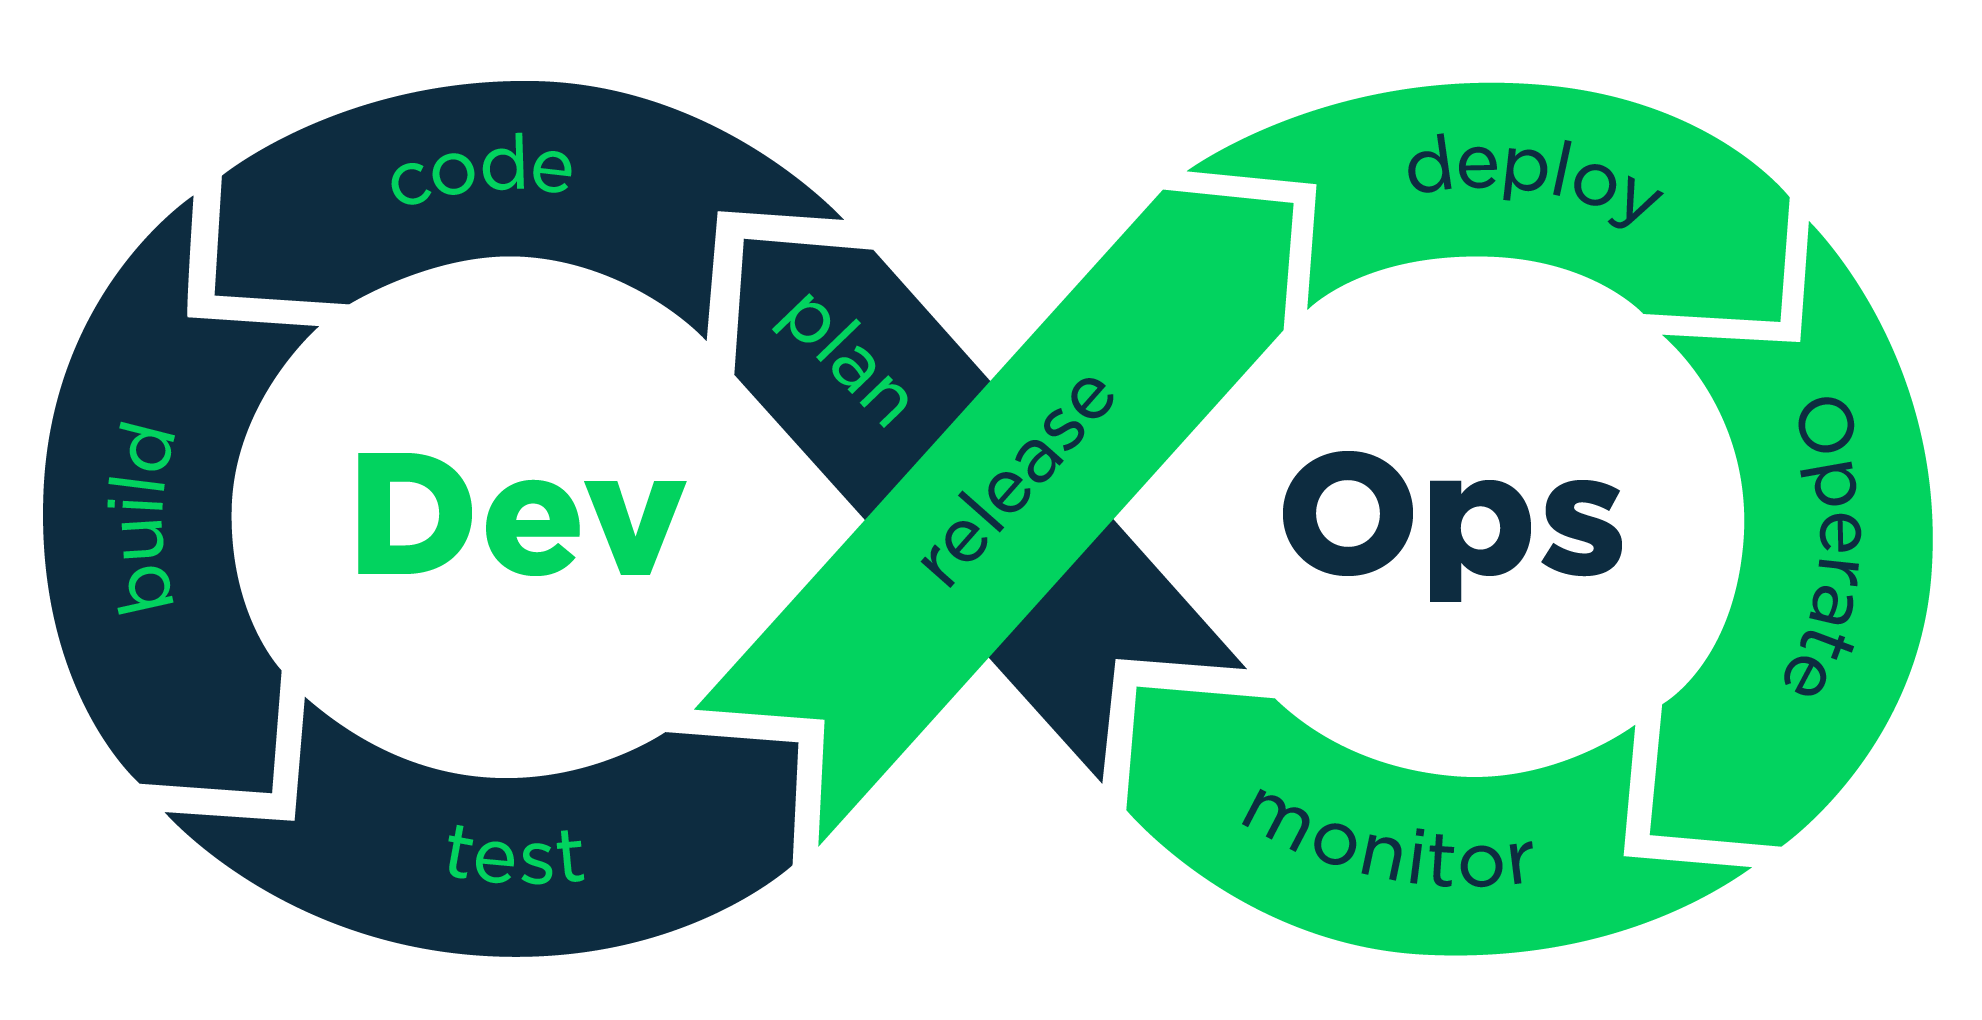 DevOps is a culture, not a role!